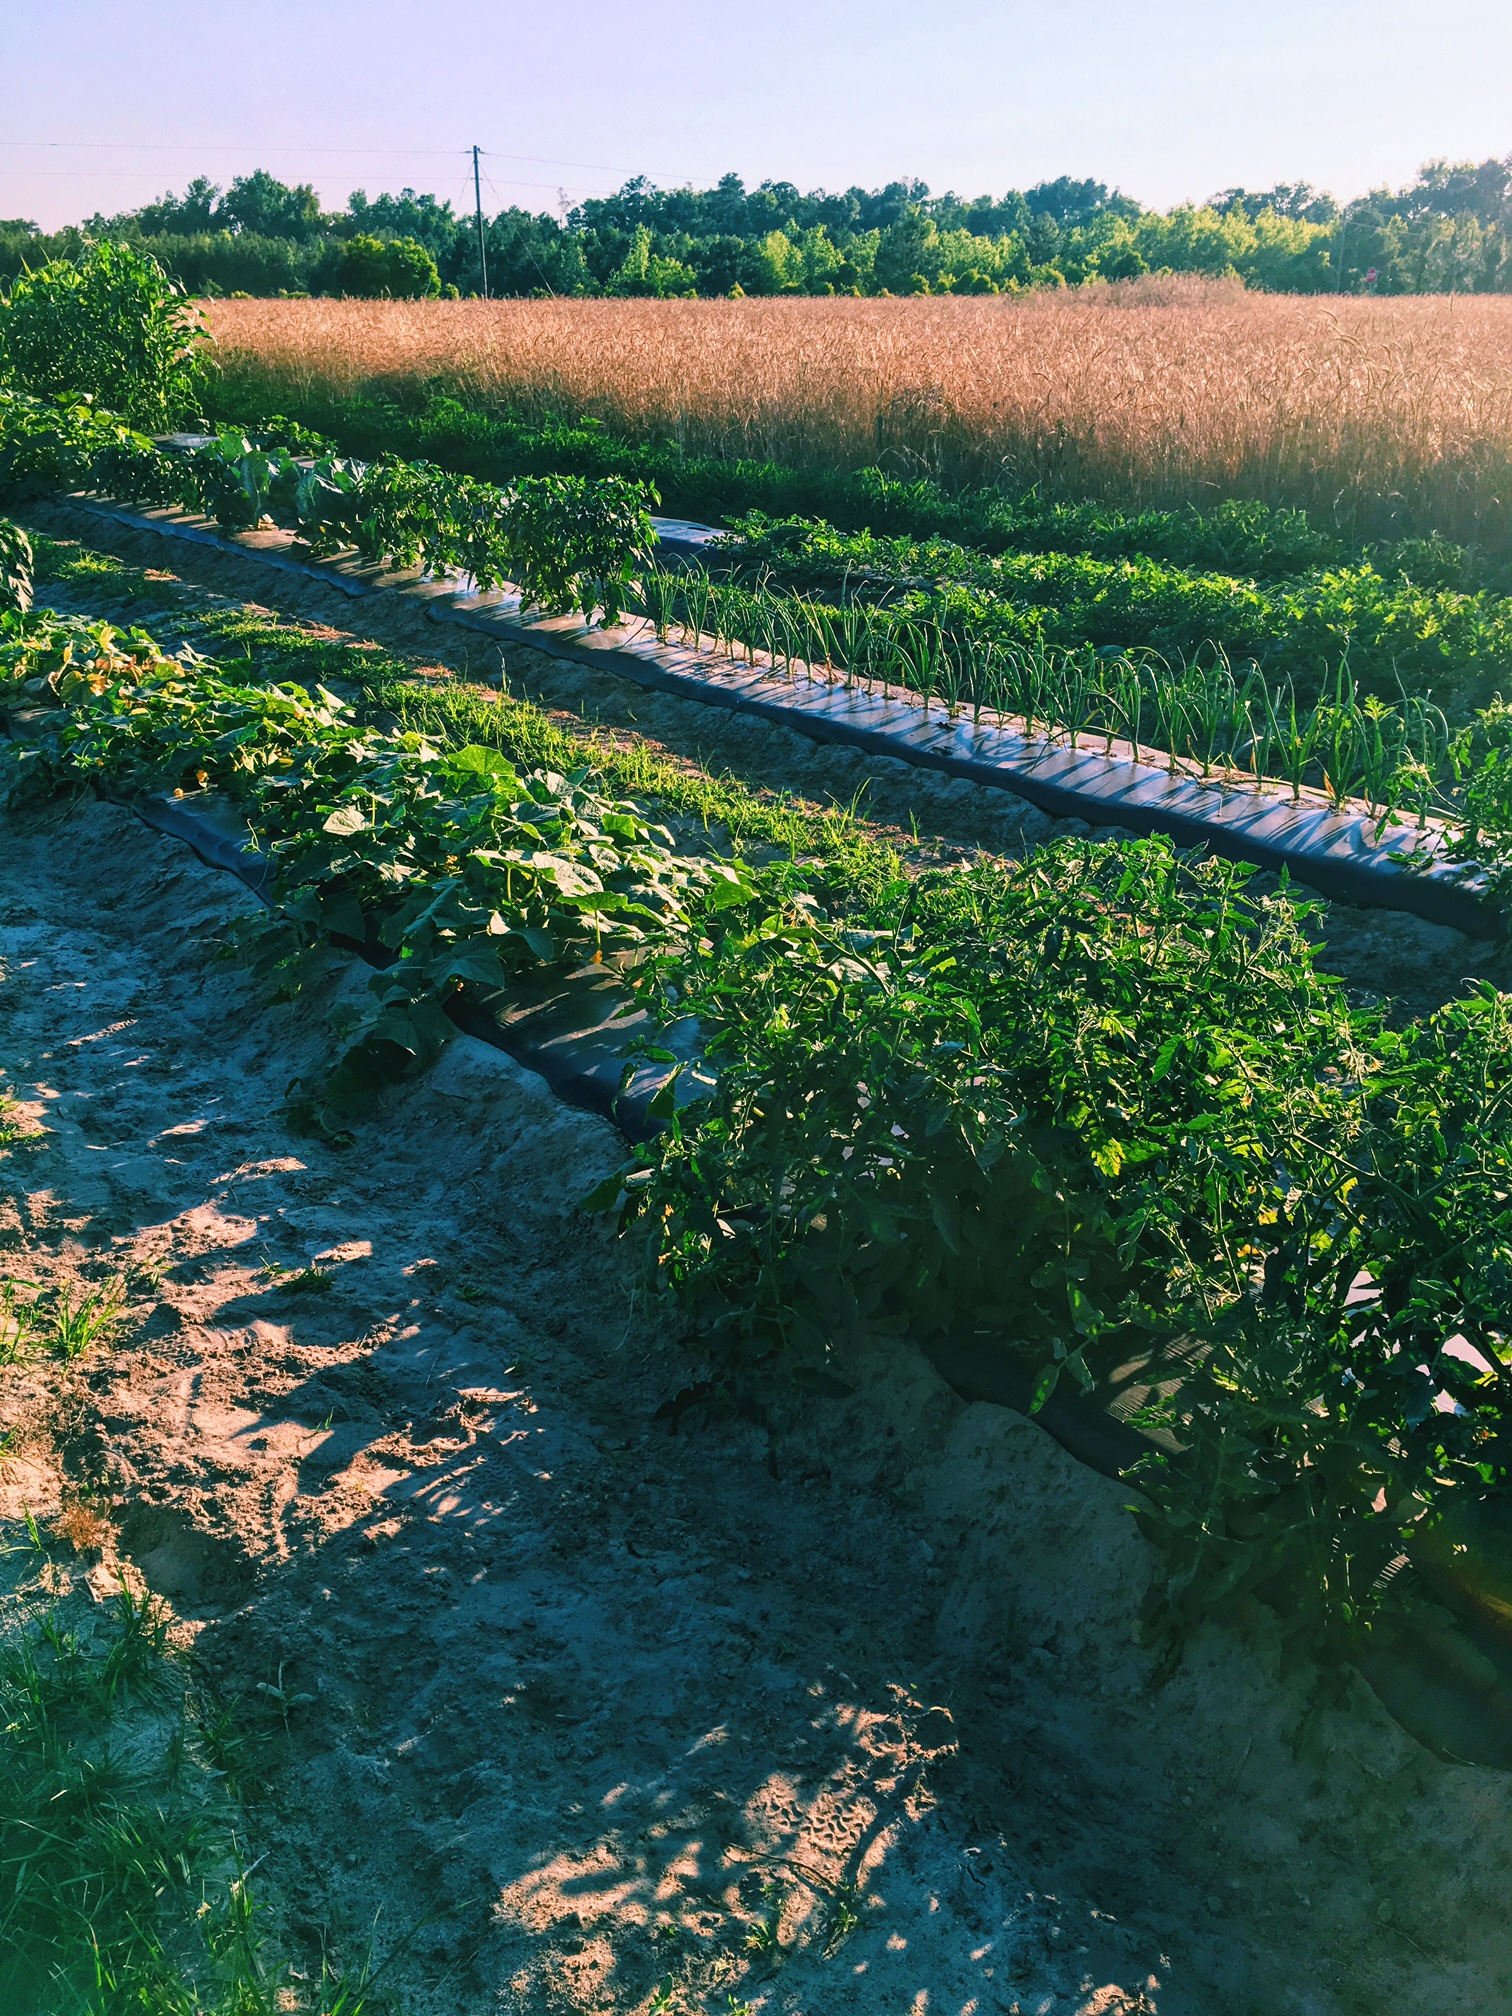 Rows and rows of corn, watermelon, peppers, onions....